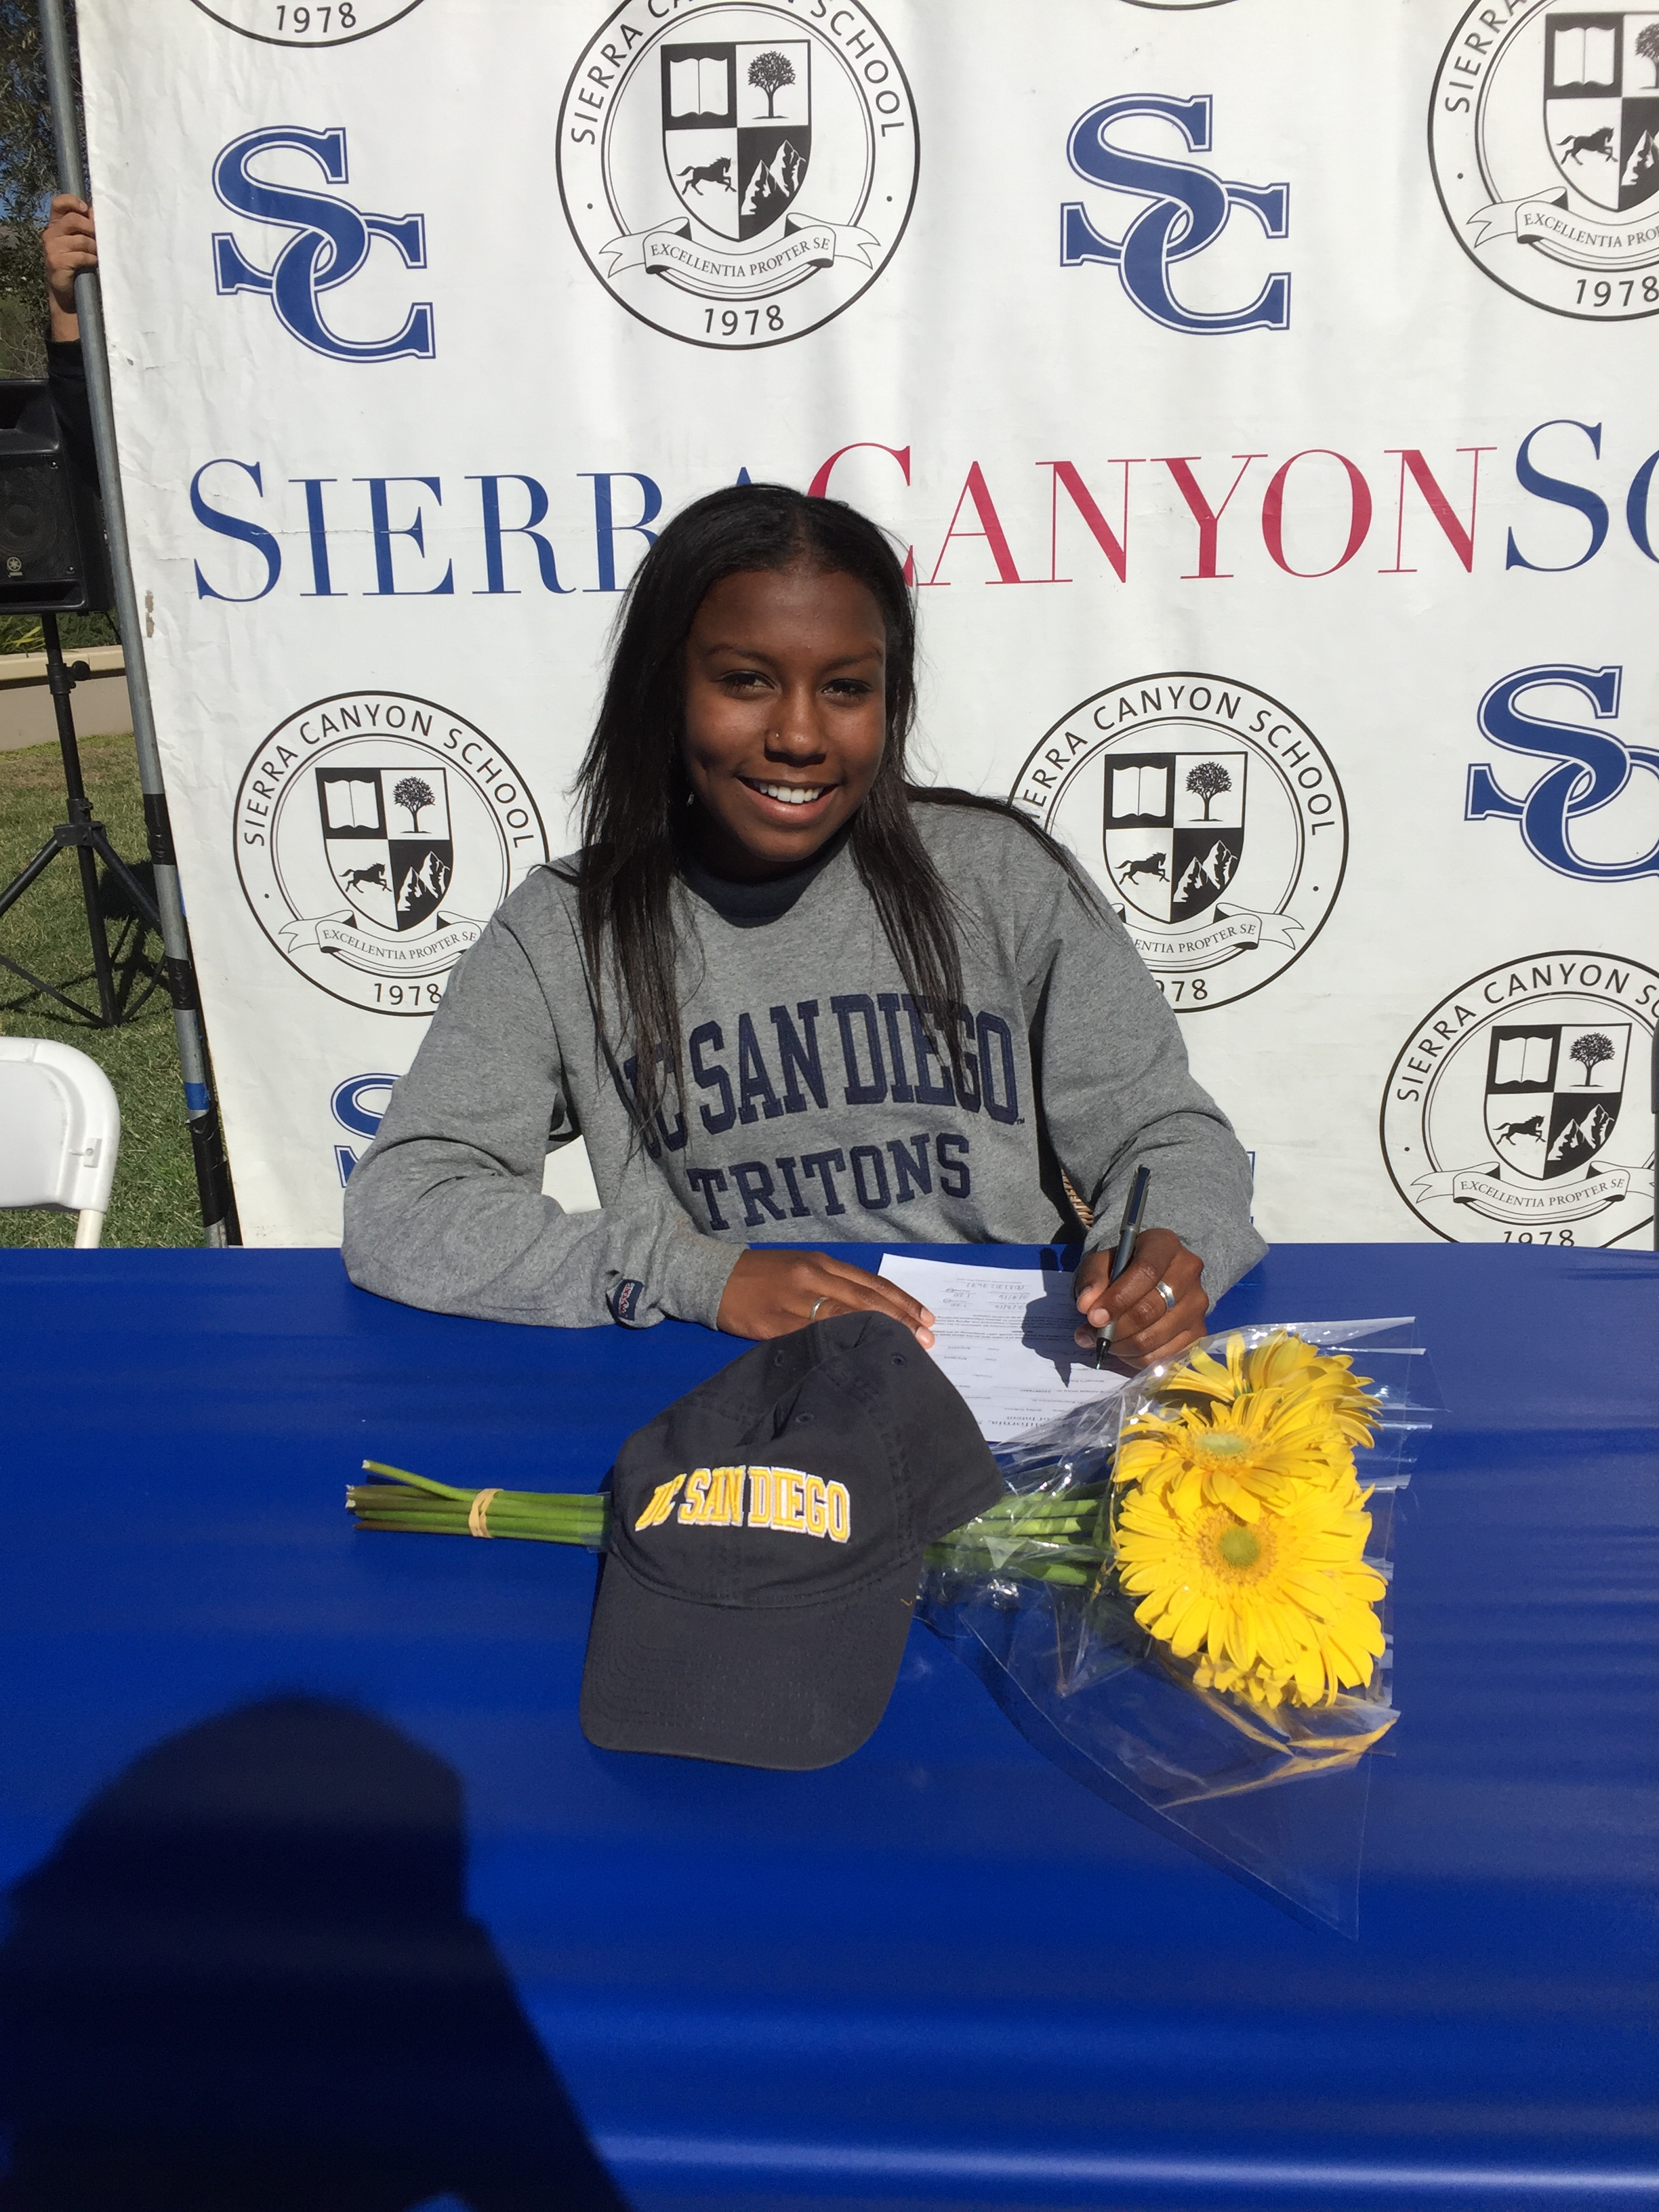 Hobson signs her Letter of Intent to UCSD, where she'll reunite with former club and high school teammate Makenna Gandara ('15). Gandara is currently a freshman on the UCSD team